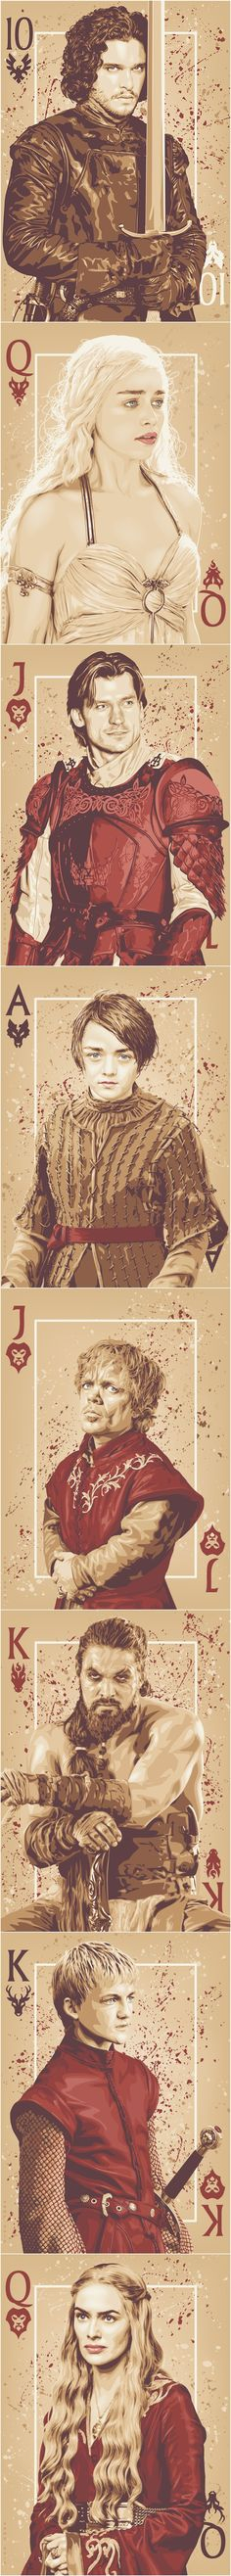 """Cards """"Game Of Thrones"""" By Ratscape"""